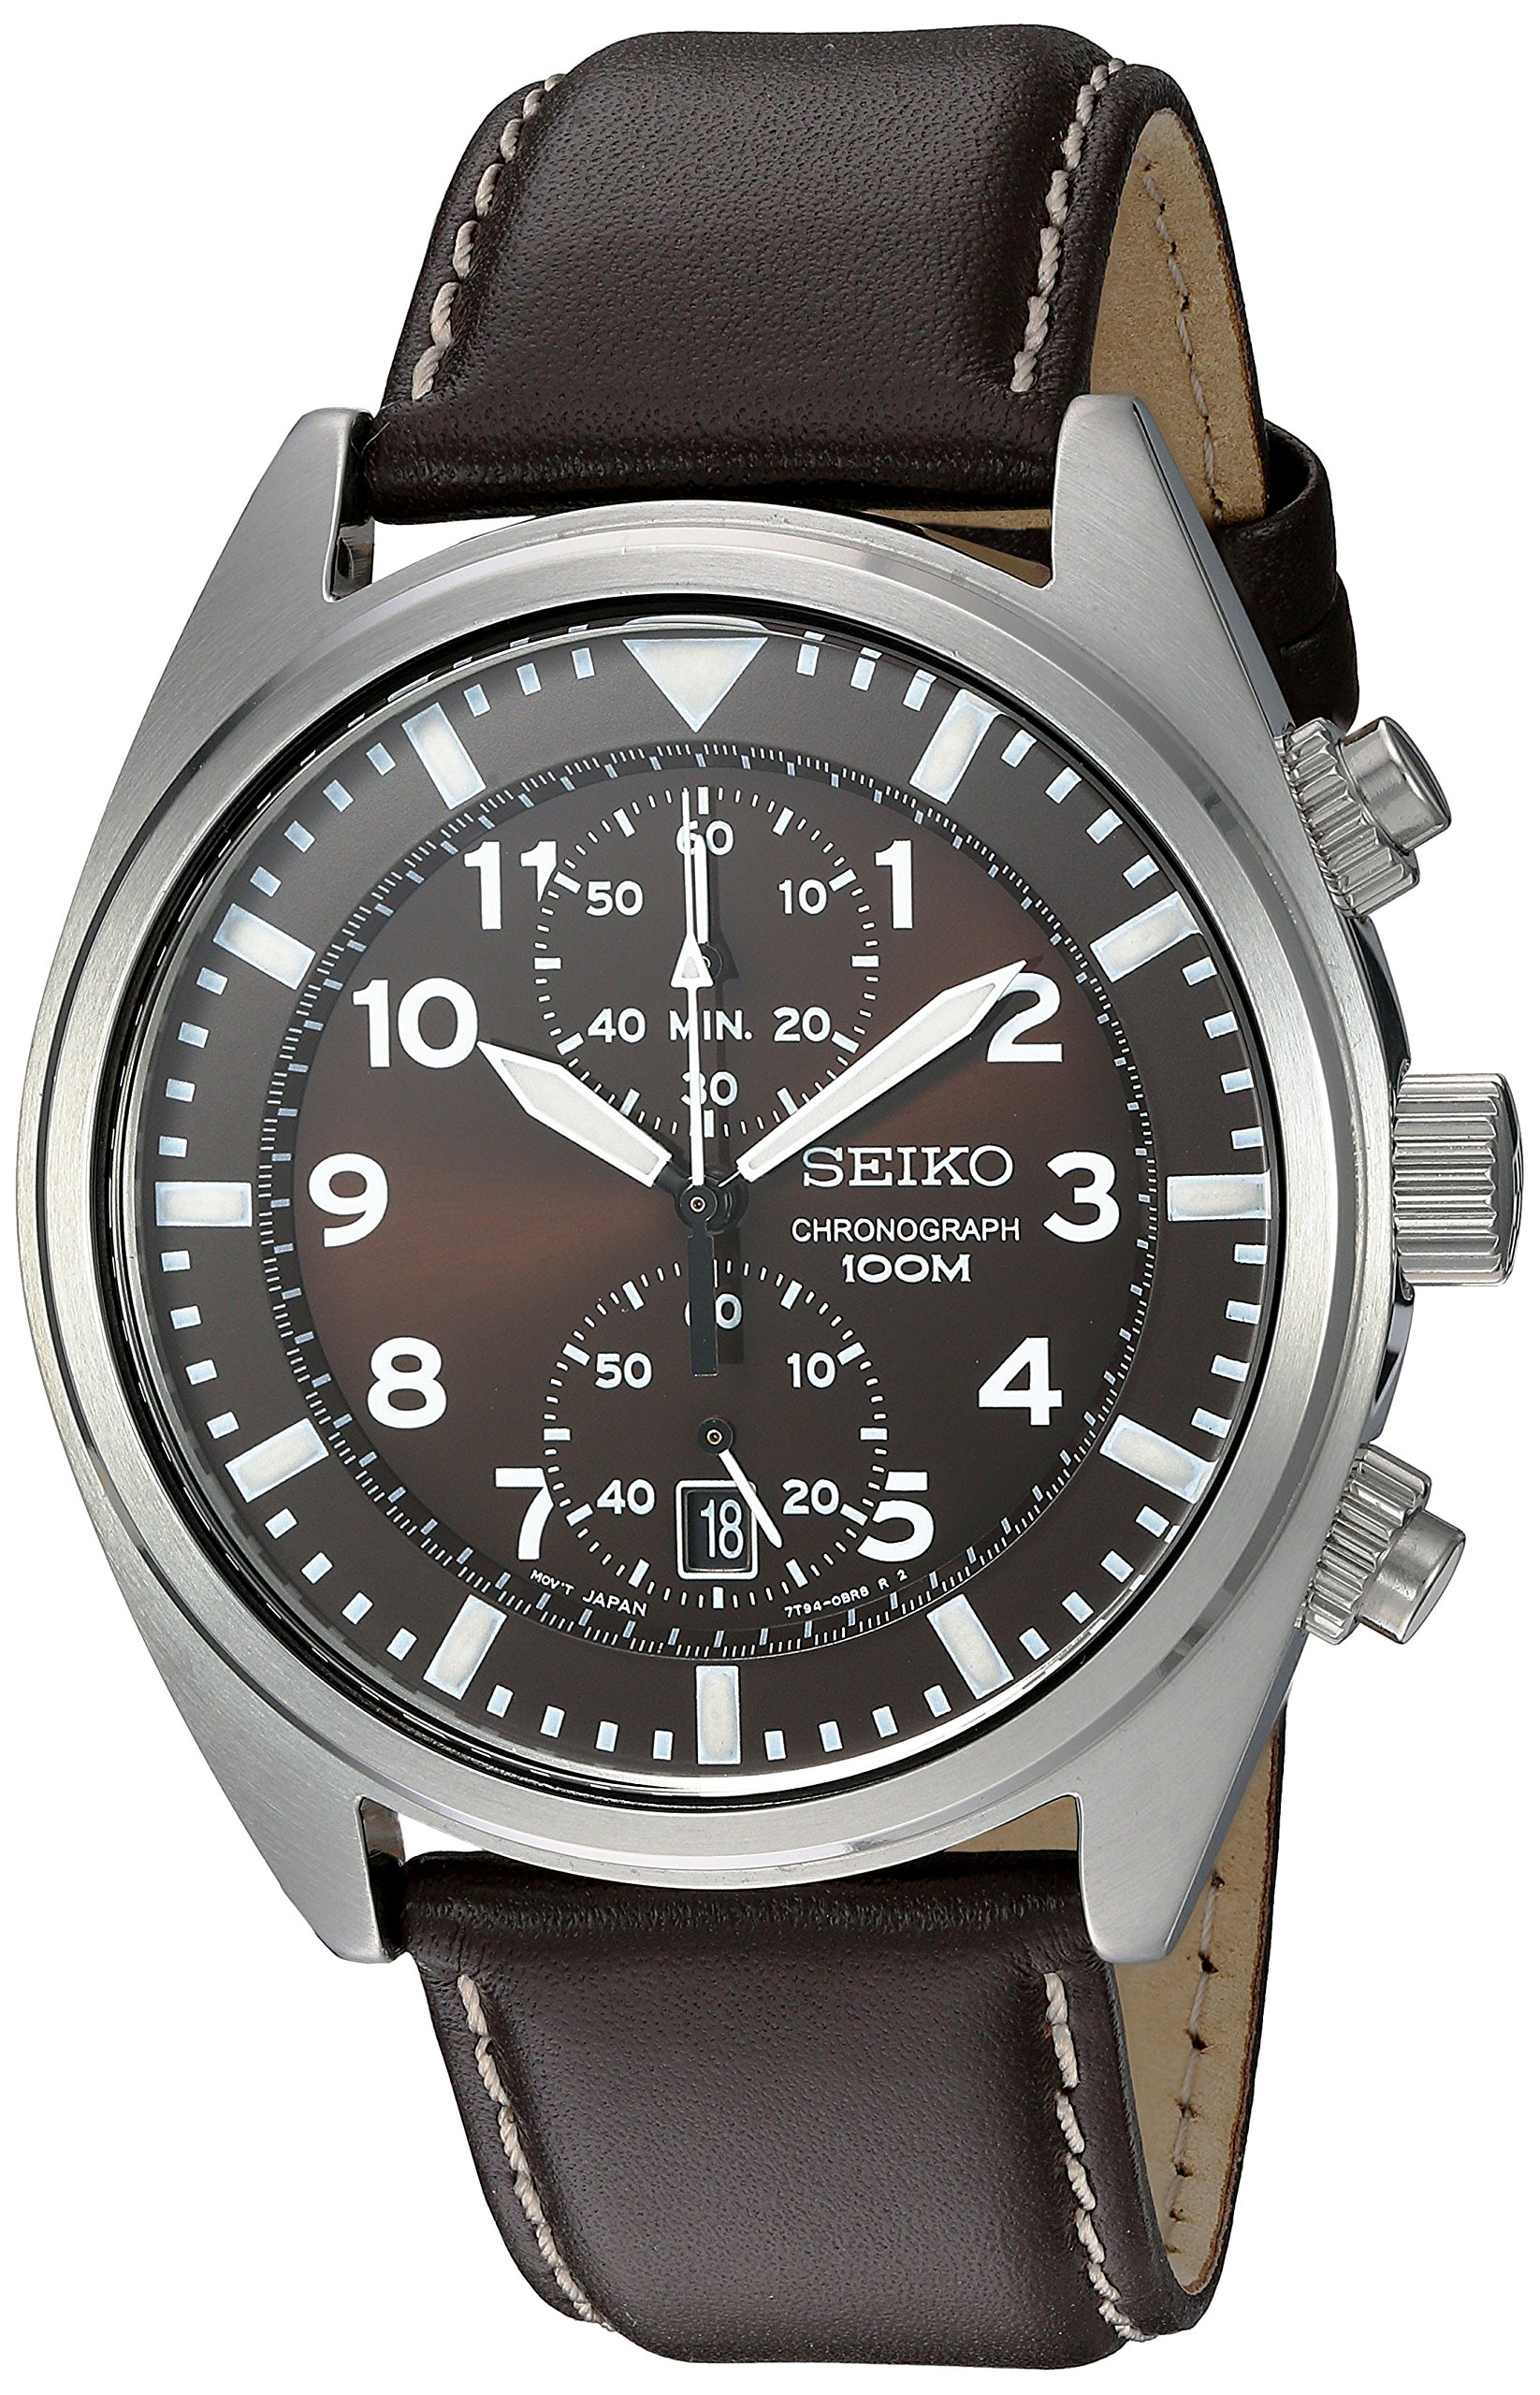 Seiko Men's SNN241 Stainless Steel Watch with Brown Leather Band by SEIKO